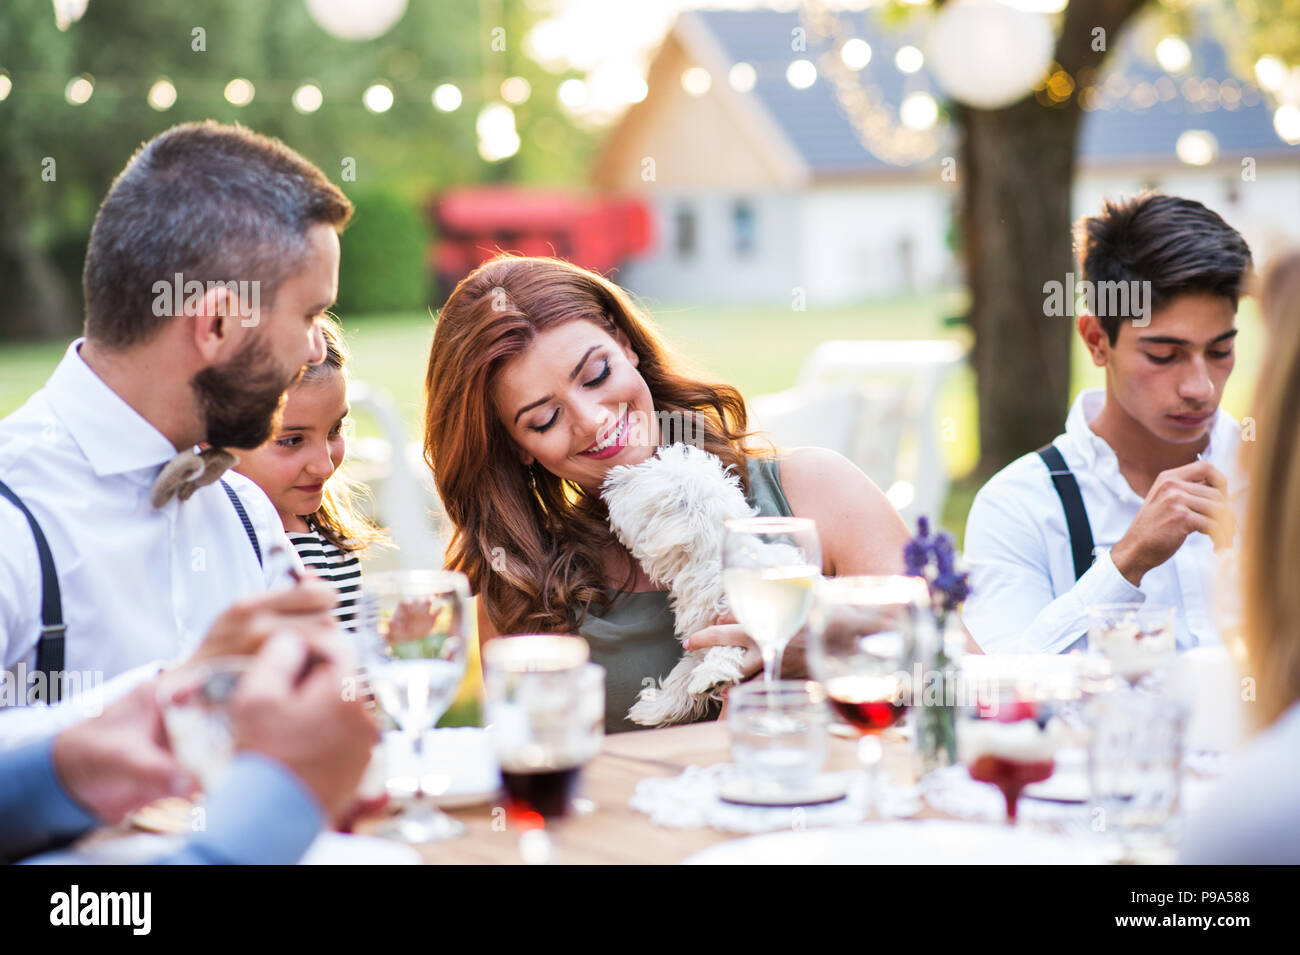 Guests with a small dog sitting at the table outside in the backyard. - Stock Image